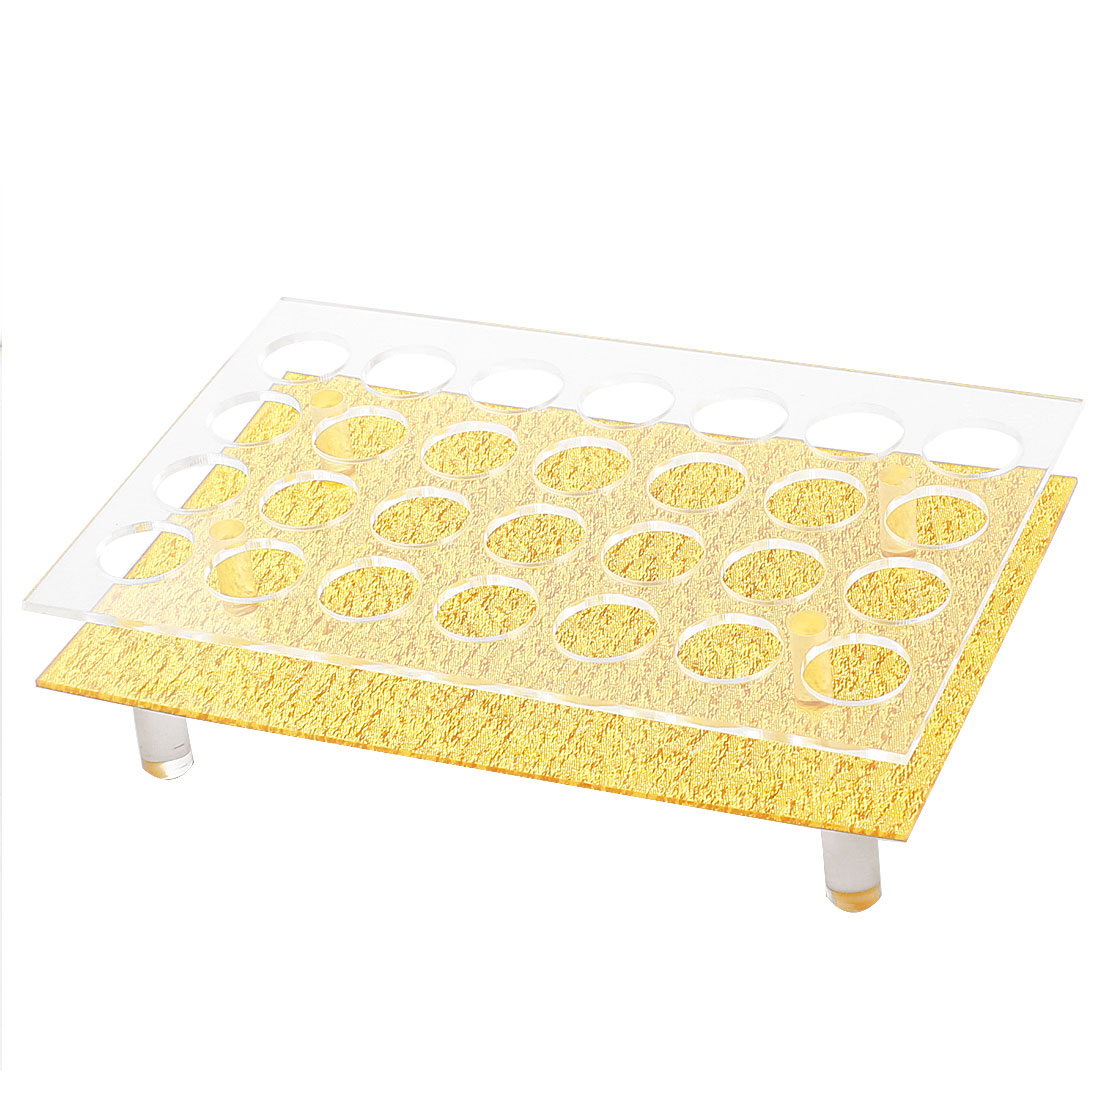 Plastic 28 Compartments Rectangle Shaped Makeup Cosmetics Lipstick Case Organizer Storage Insert Holder Clear Gold Tone